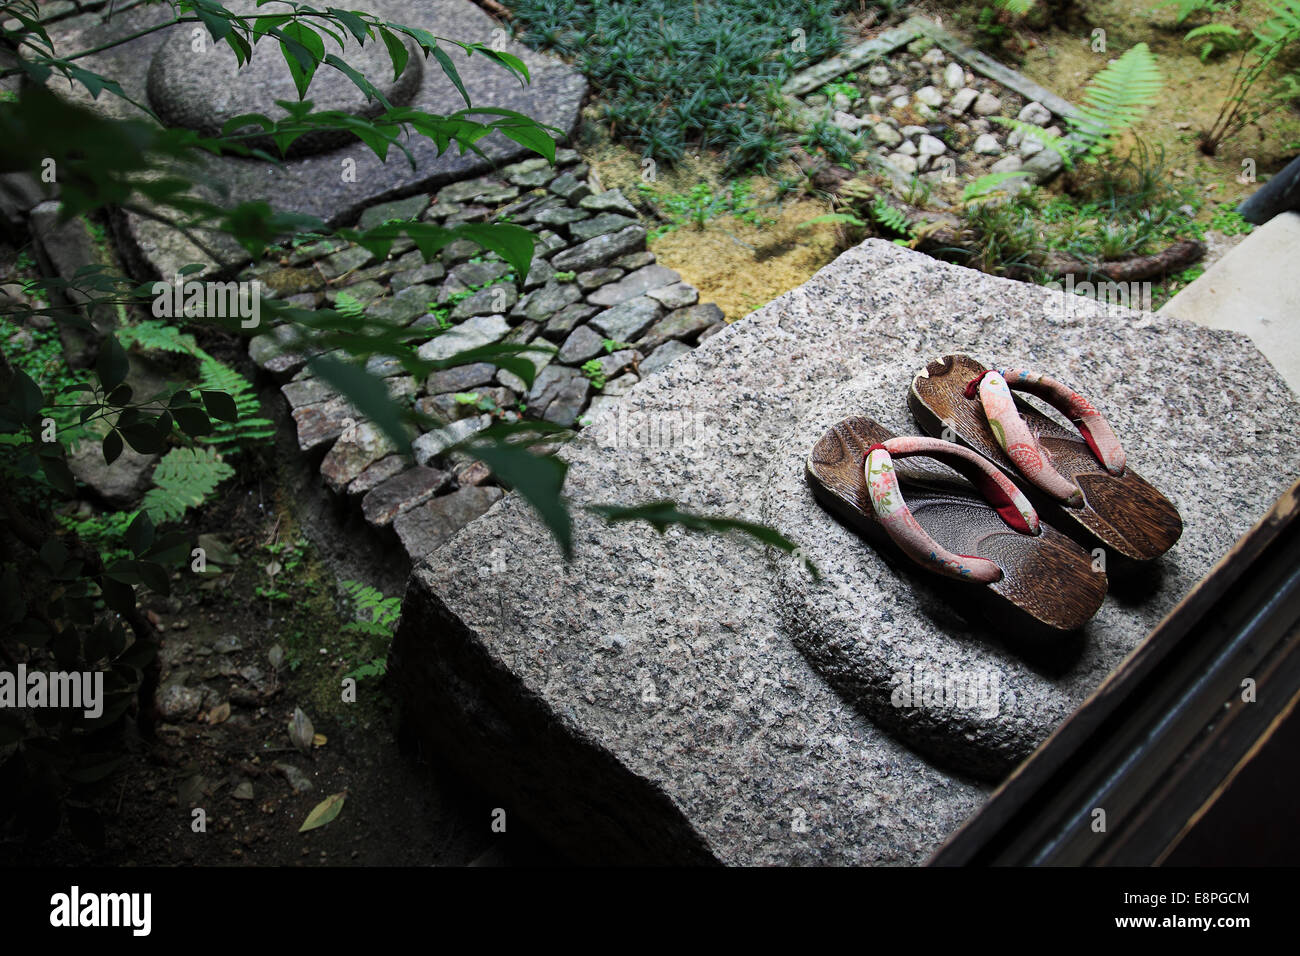 Zori sandals at a Tsubo-niwa (courtyard garden) in Nara, Japan. - Stock Image